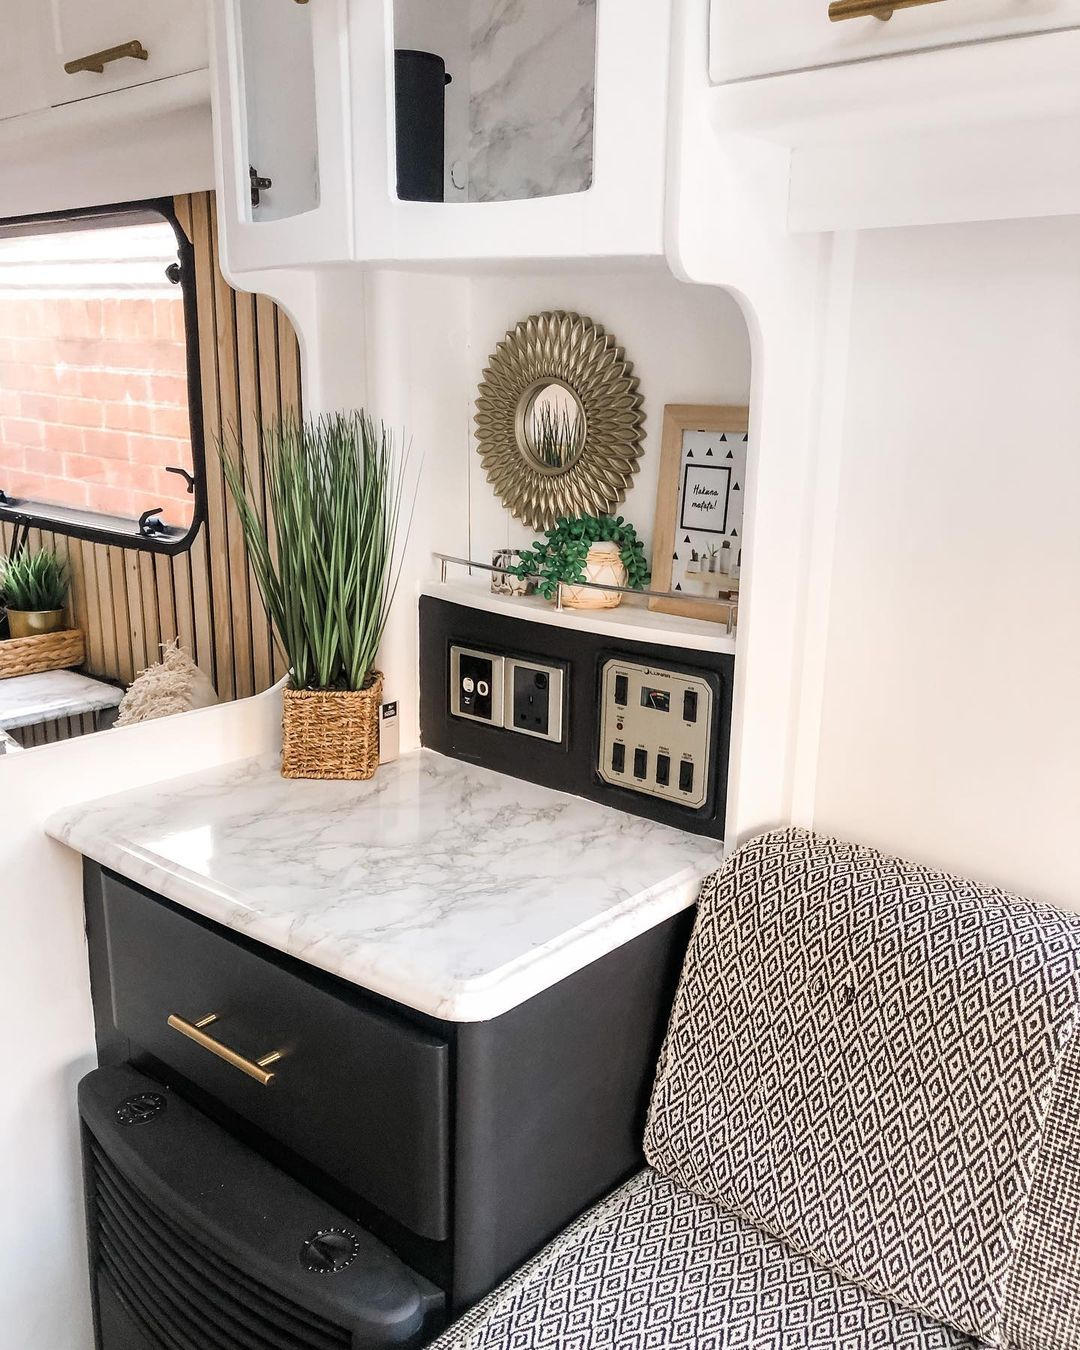 Decor details in a renovated caravan showing a new countertop.